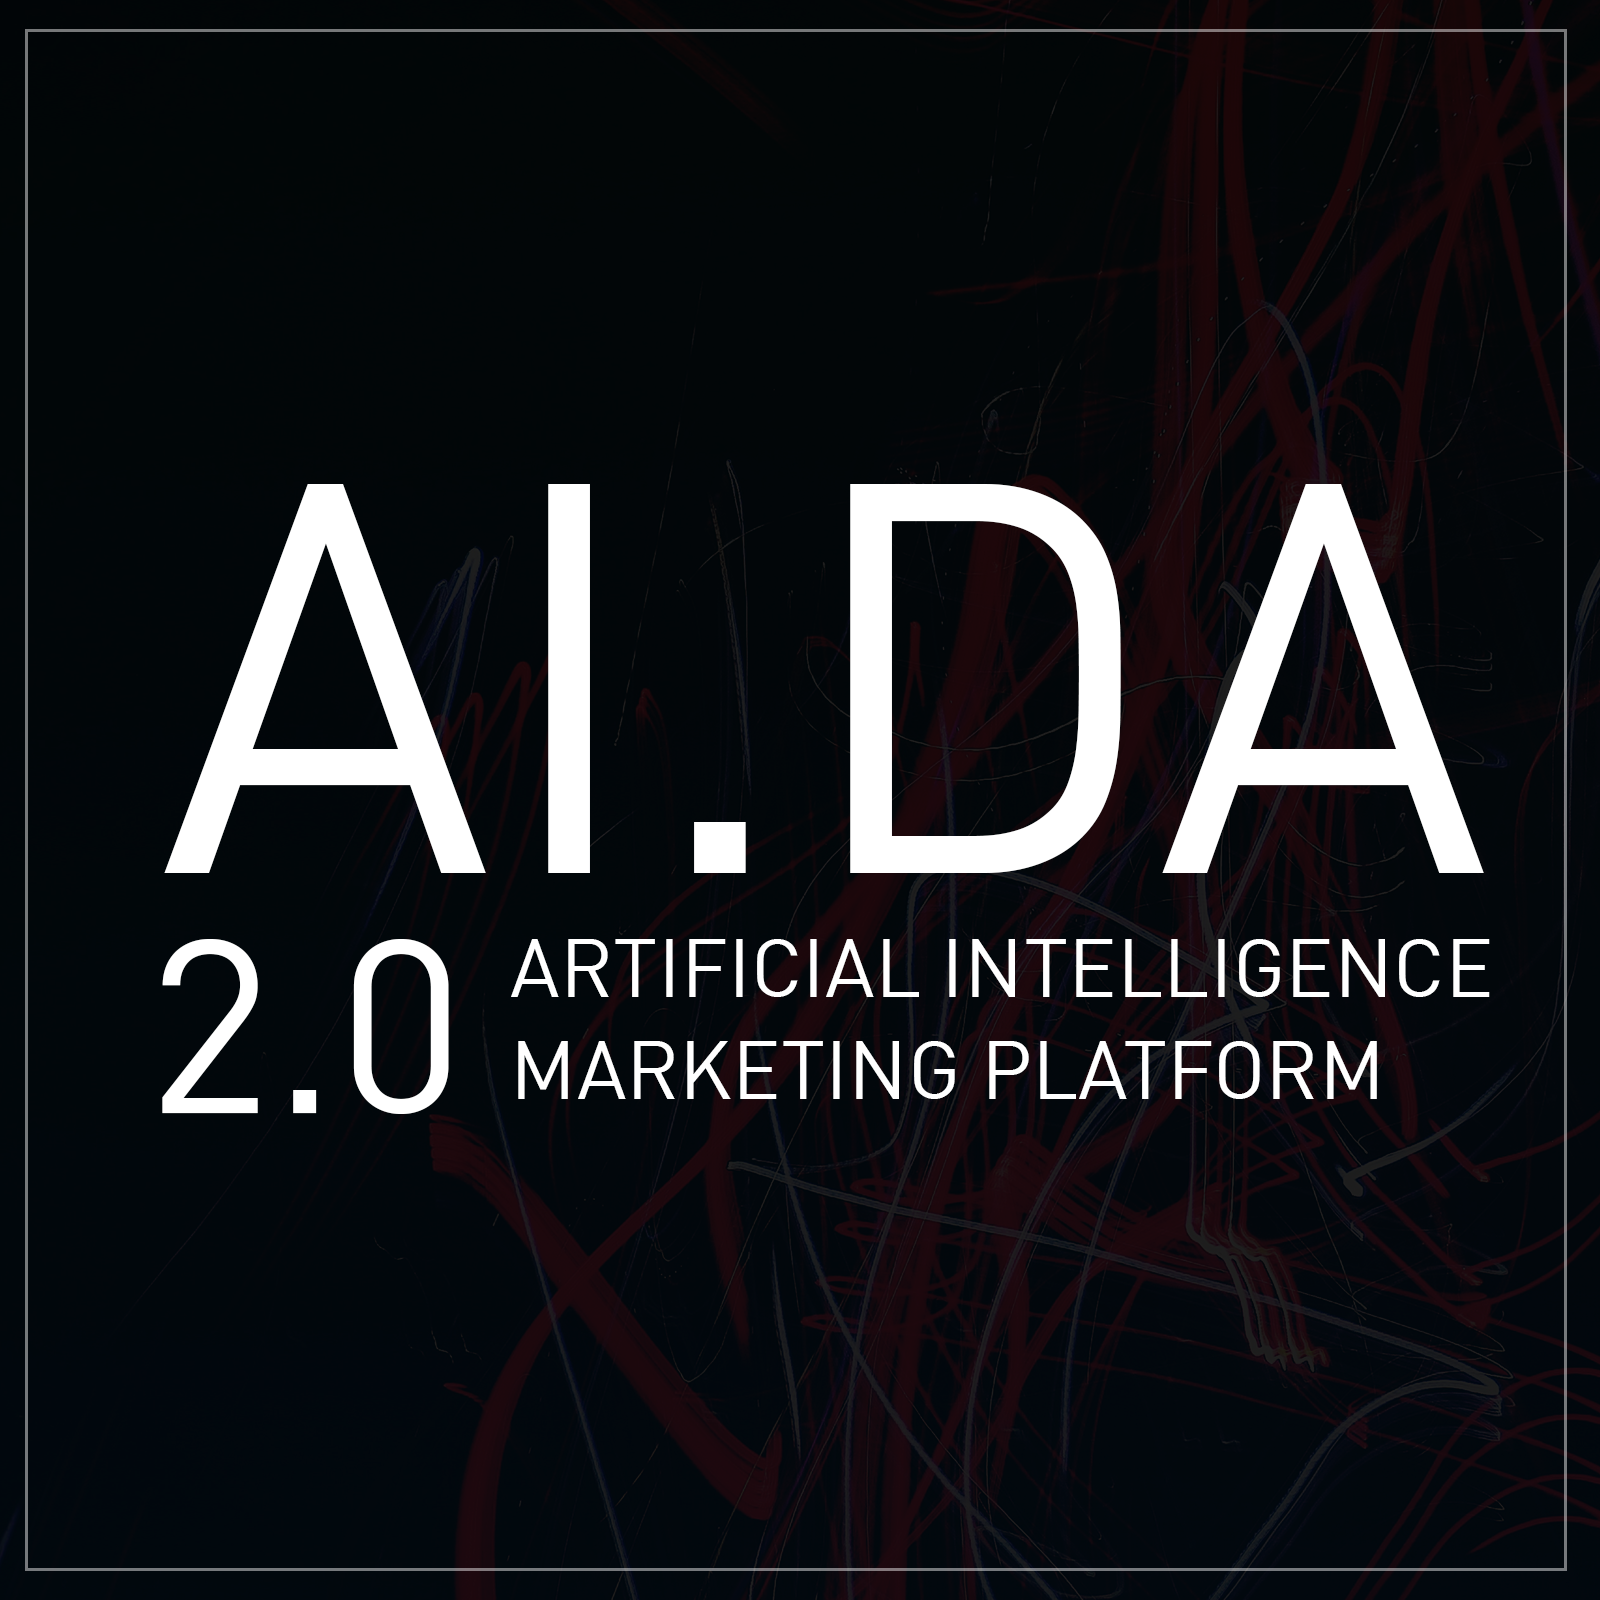 15,000 Data Points - AI.DA 2.0 is an Artificial Intelligence growth solution that creates psychological and empathic links with targets, identifying new untapped customer segments & data profiles, encouraging them to convert at a much higher percentage at the maximum yield.AI.DA 2.0's proprietary 24 algorithms focus on extracting & refining new data segments based off of real-time cognitive behavior, big data, public data, and seasoned anonymized internal information silos. AI.DA 2.0 focuses on stitching together the 15,000 aforementioned touchpoints to zero in on the type-a customer.